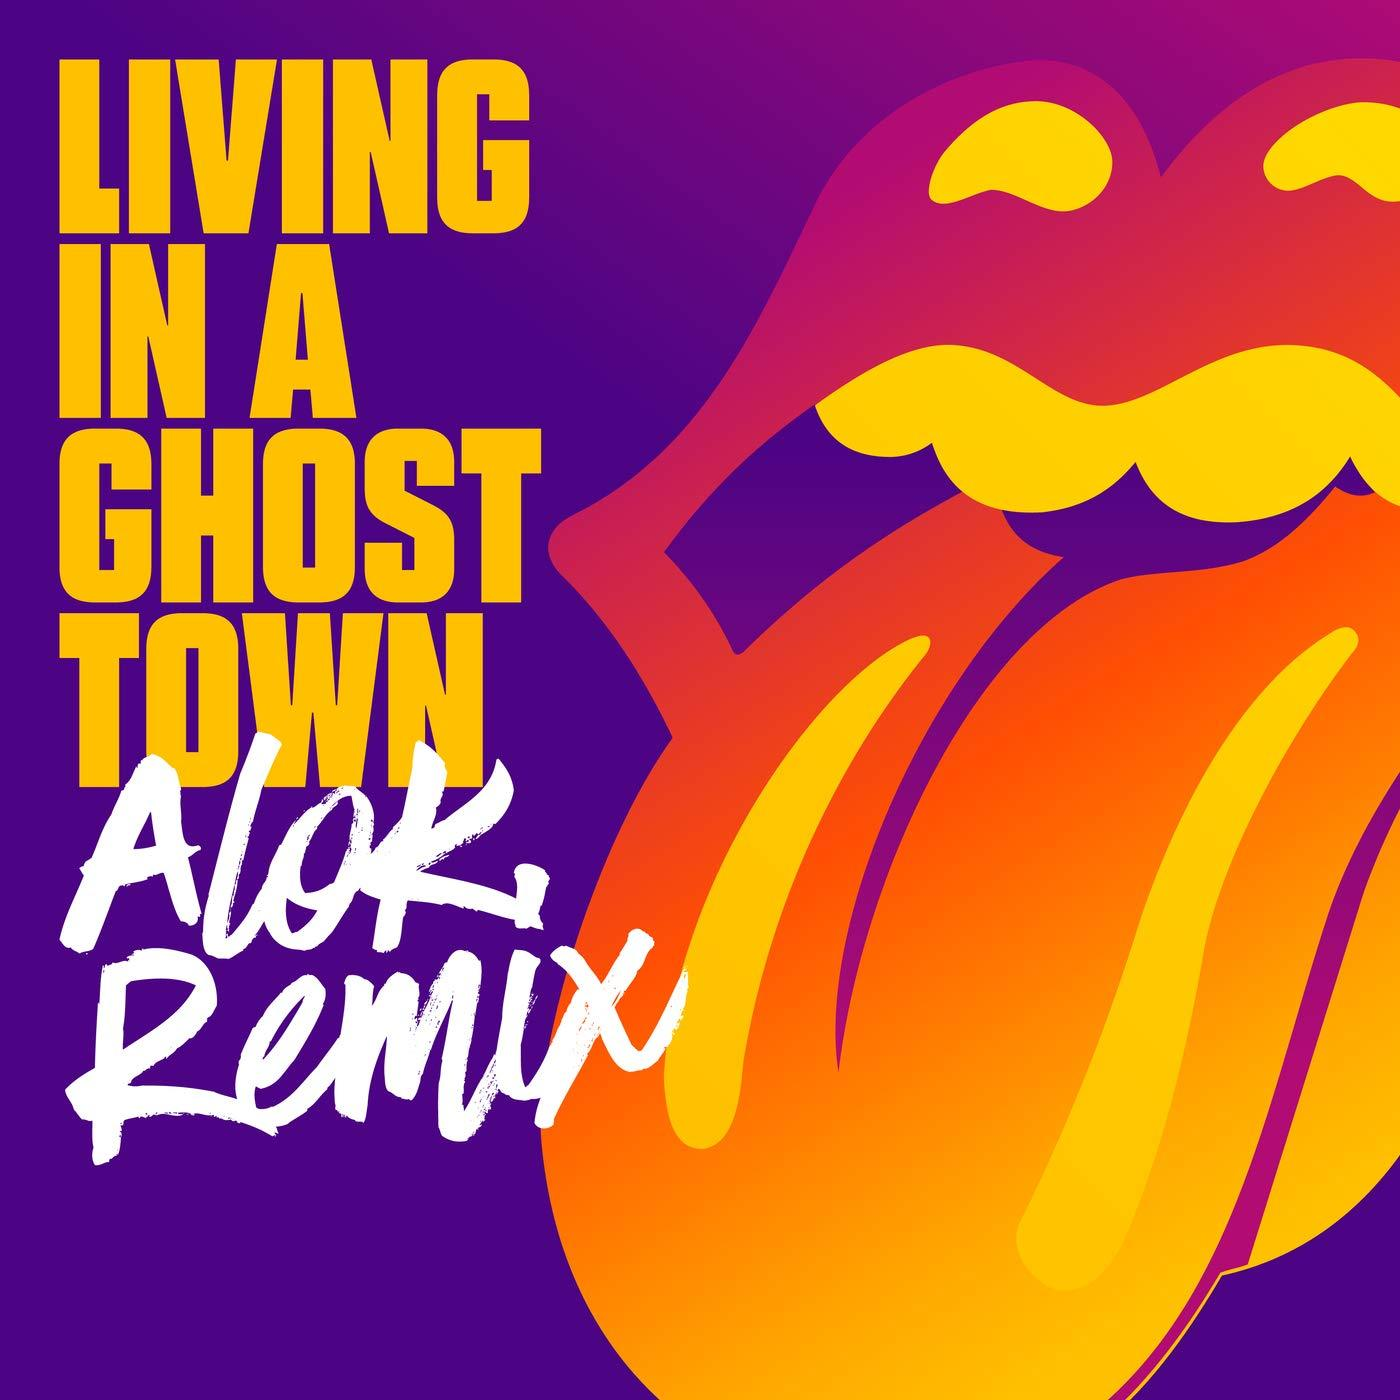 Rolling Stones, The - Living In A Ghost Town [10''] (Orange Vinyl, limited) - Urban Vinyl | Records, Headphones, and more.